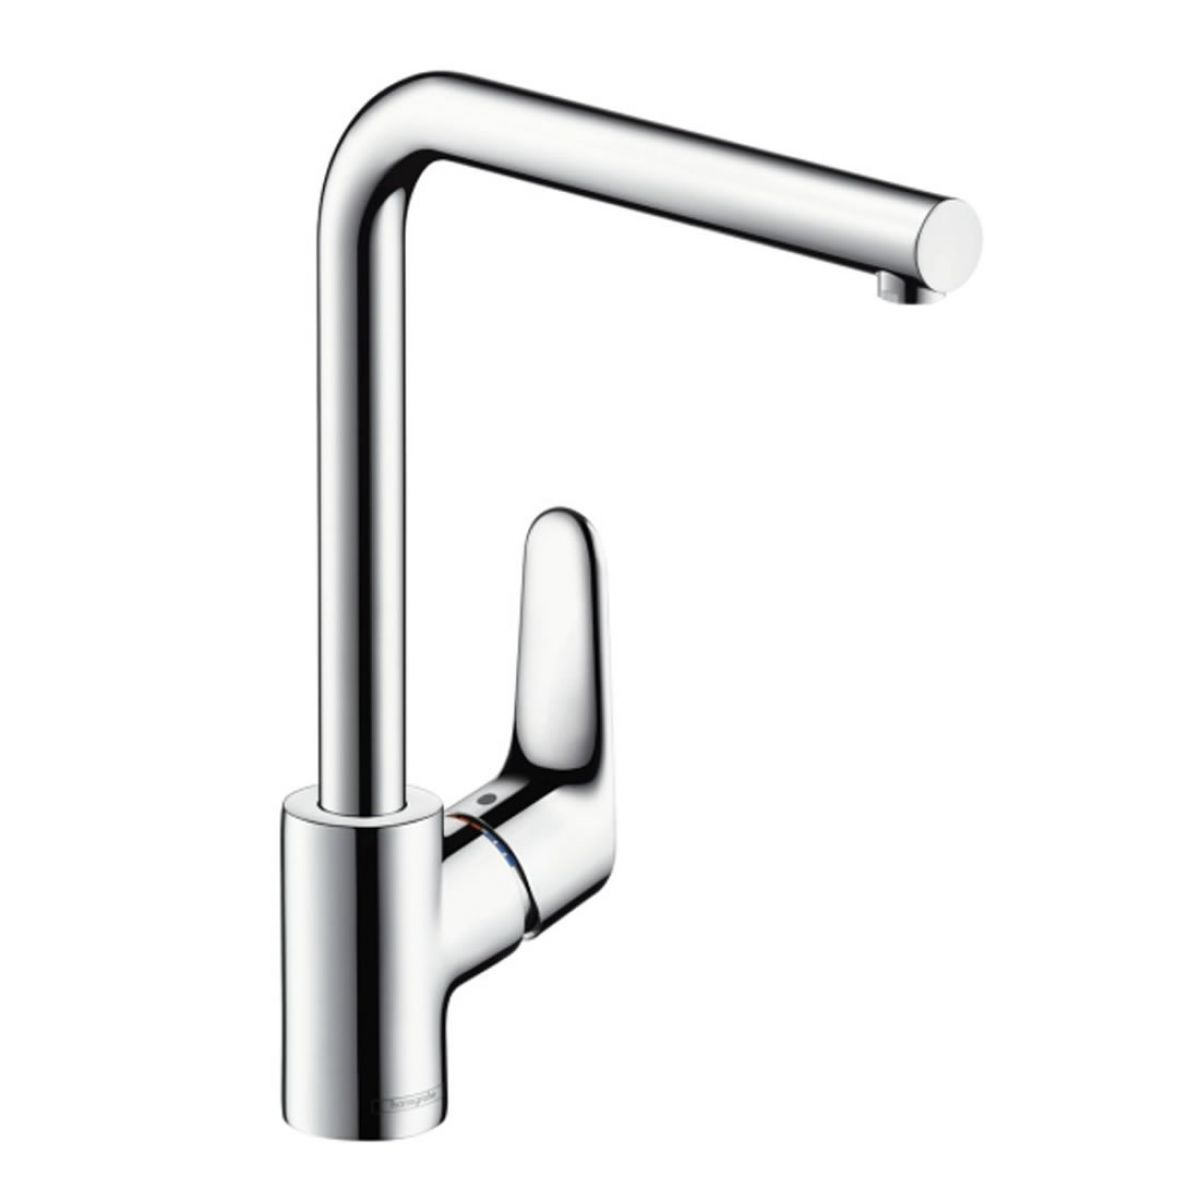 Hansgrohe Focus 280 Kitchen Mixer Tap